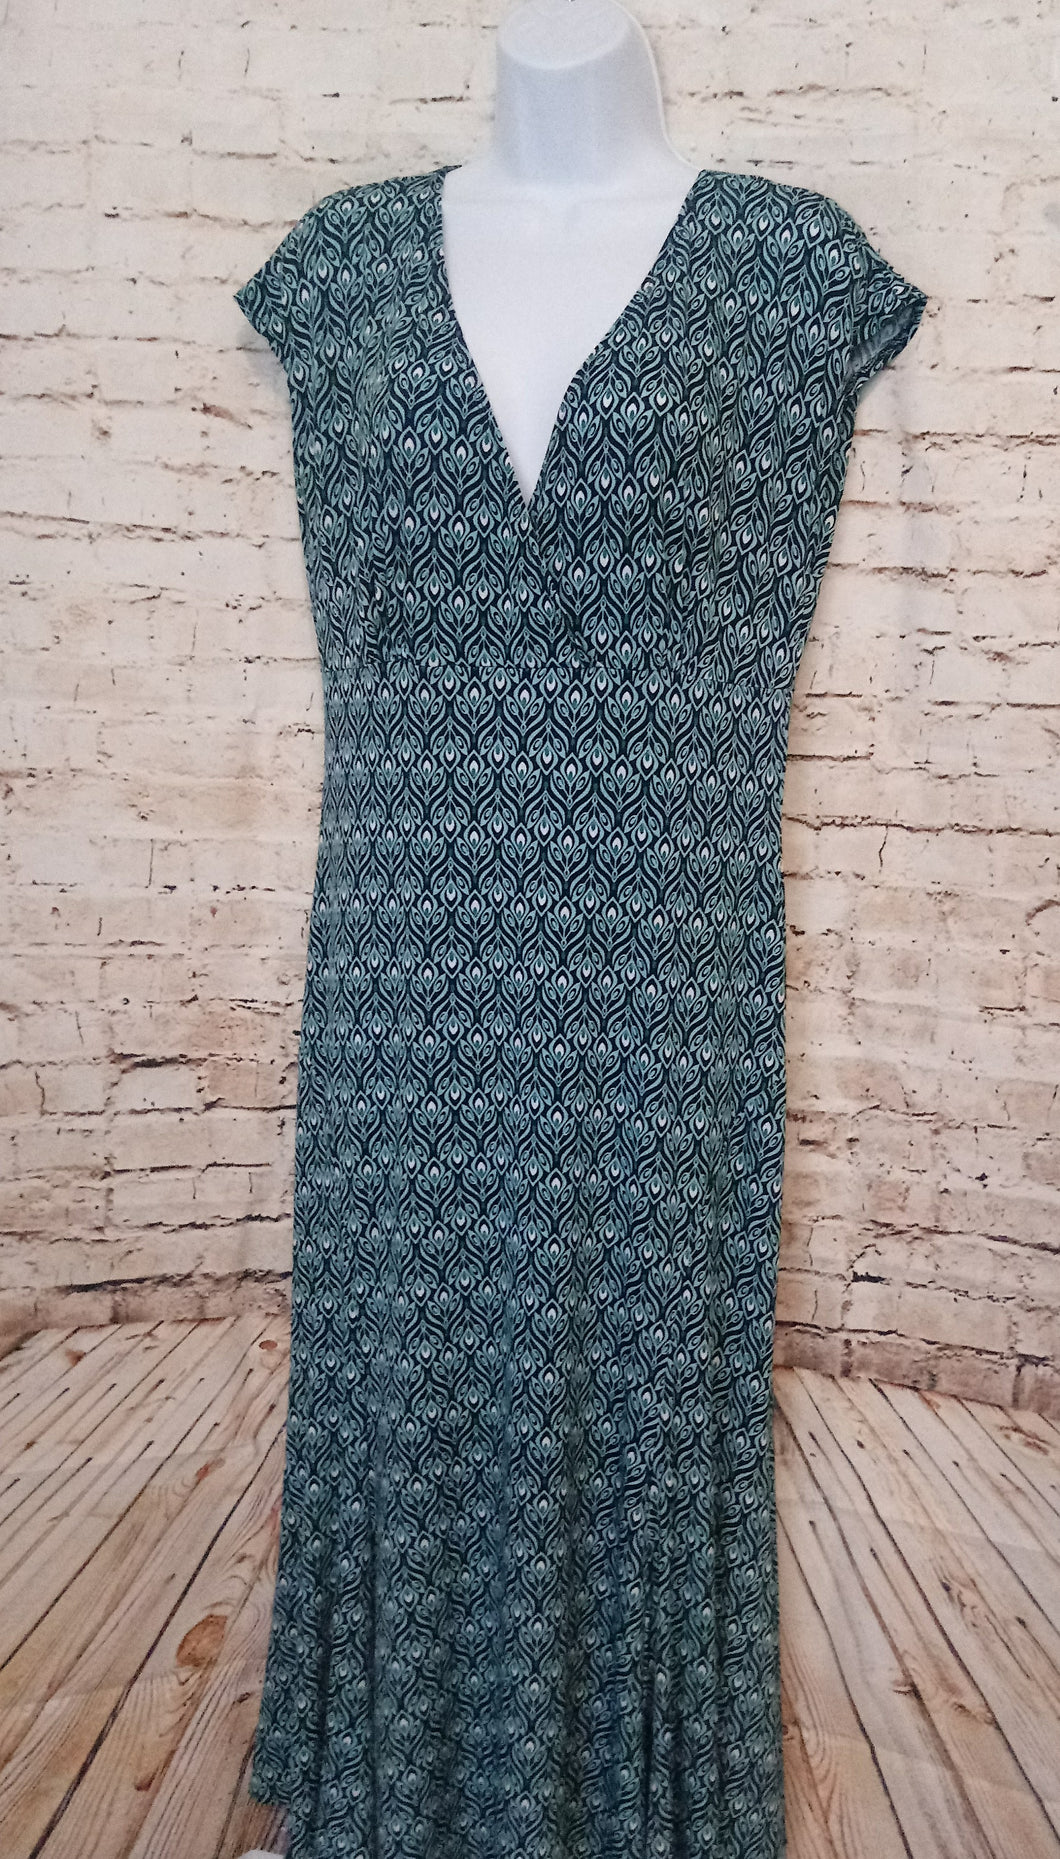 Dressbarn Sleeveless Dress Size 10 - Anna's Armoire